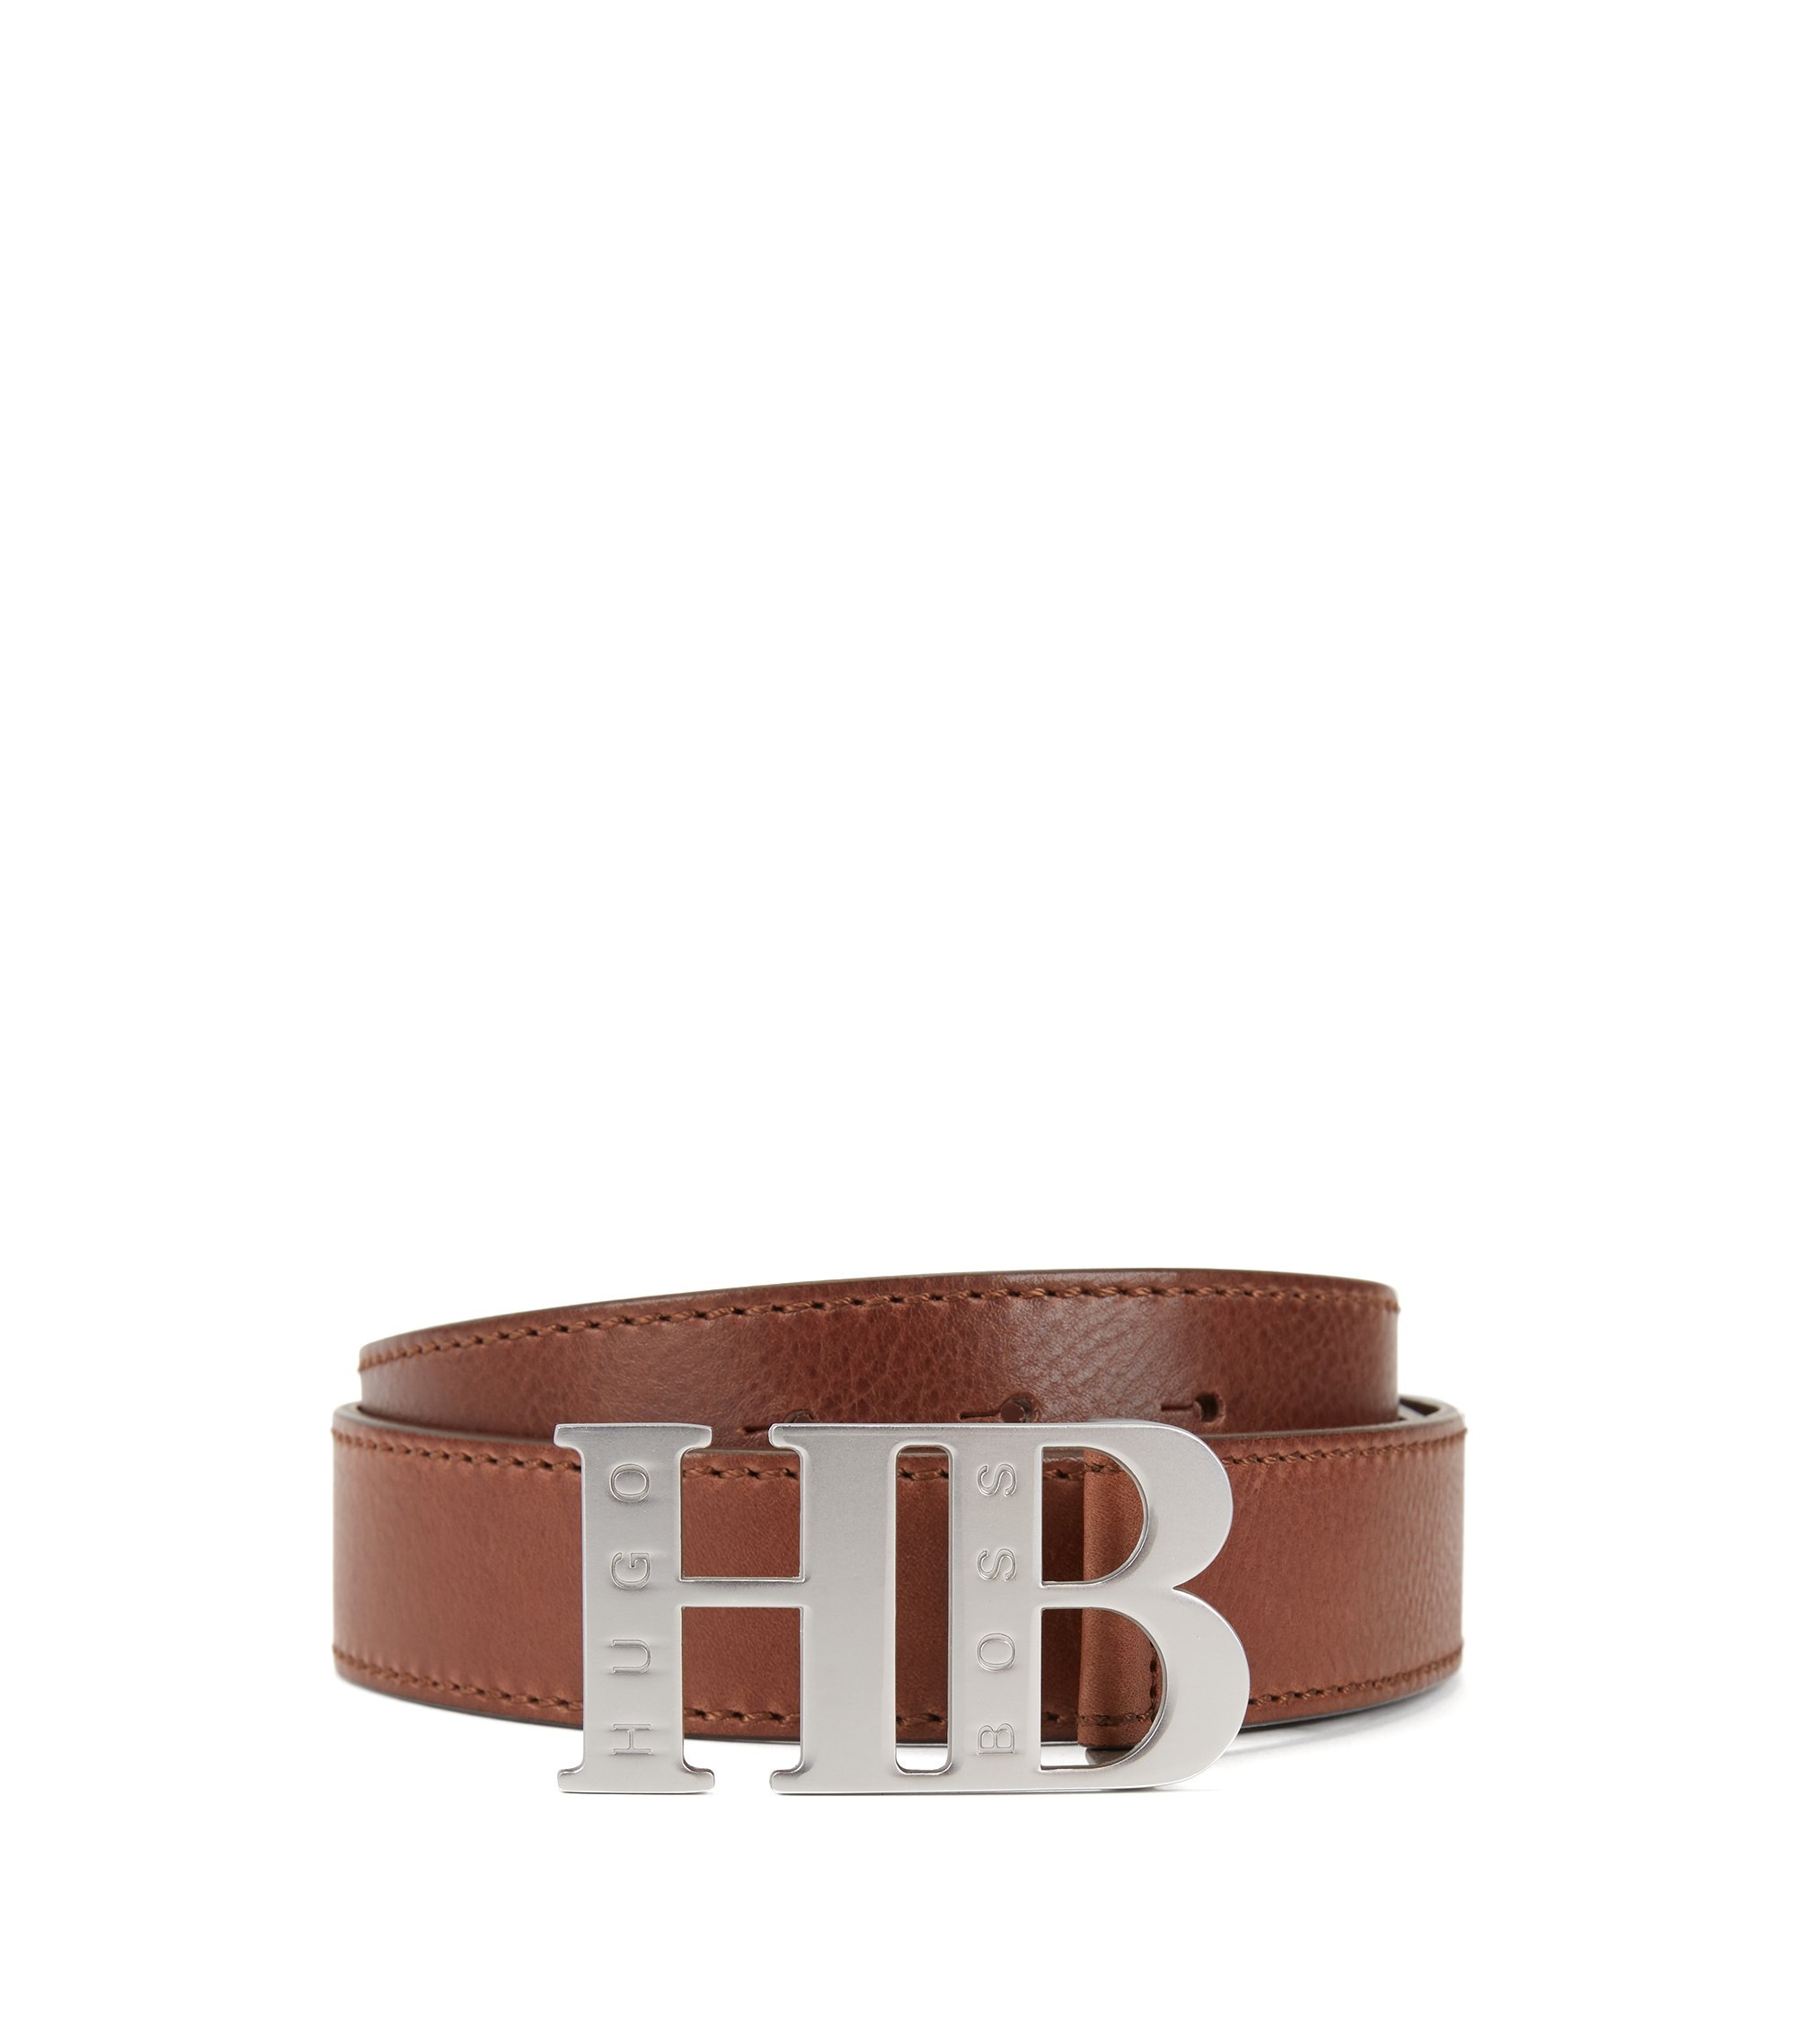 Italian-leather belt with branded plaque fastening, Brown